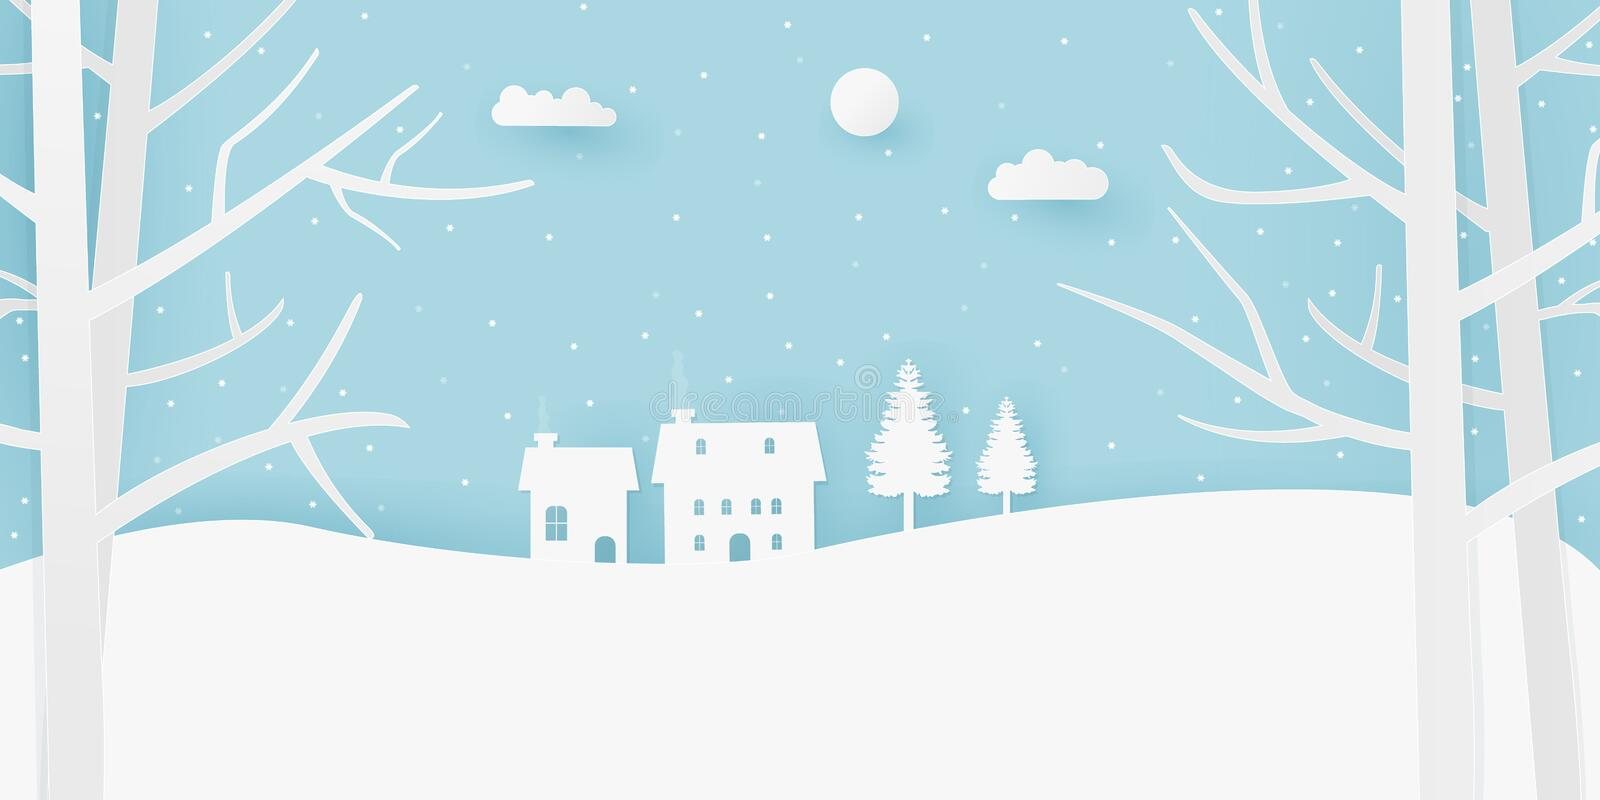 Landscape snowy scenery paper art illustration style design with tree, cloud, sun and houses. stock photography